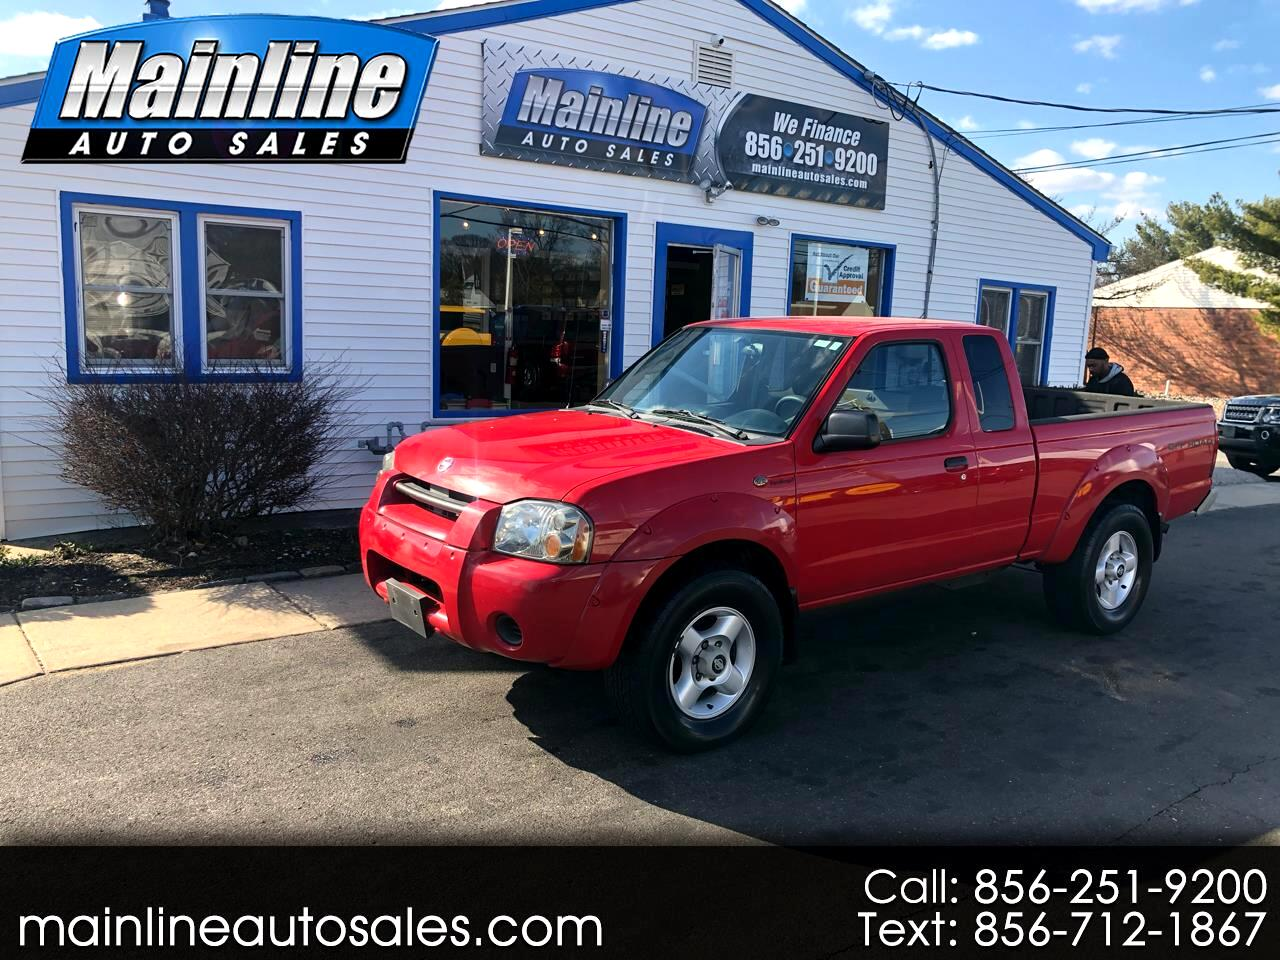 2002 Nissan Frontier 4WD SVE King Cab V6 Auto SuperCharger